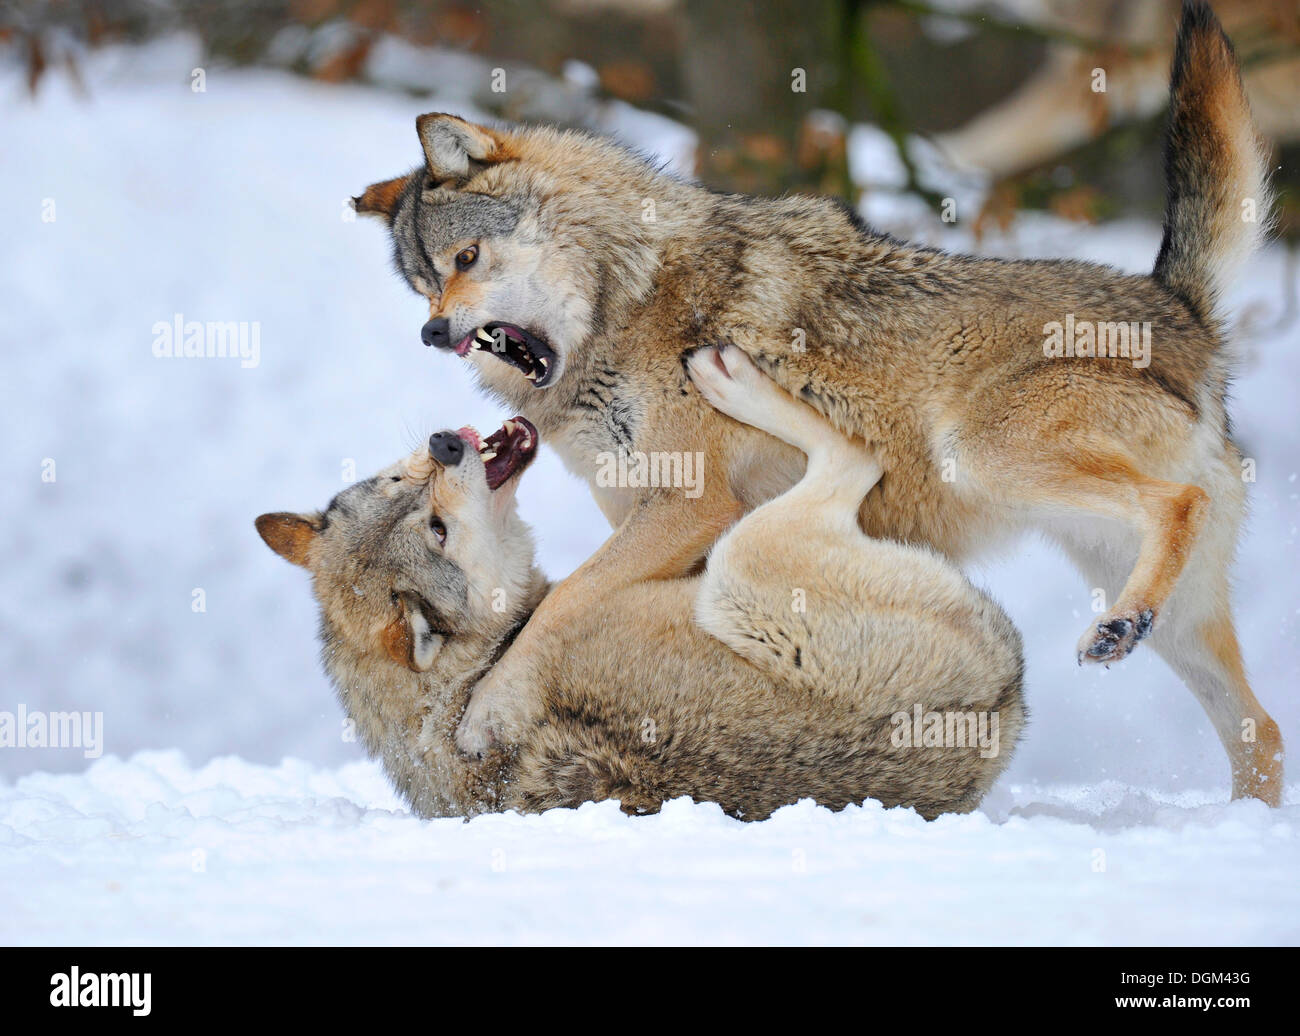 Mackenzie-Wolves, Eastern wolf, Canadian wolf (Canis lupus occidentalis) in snow, fight for social ranking - Stock Image